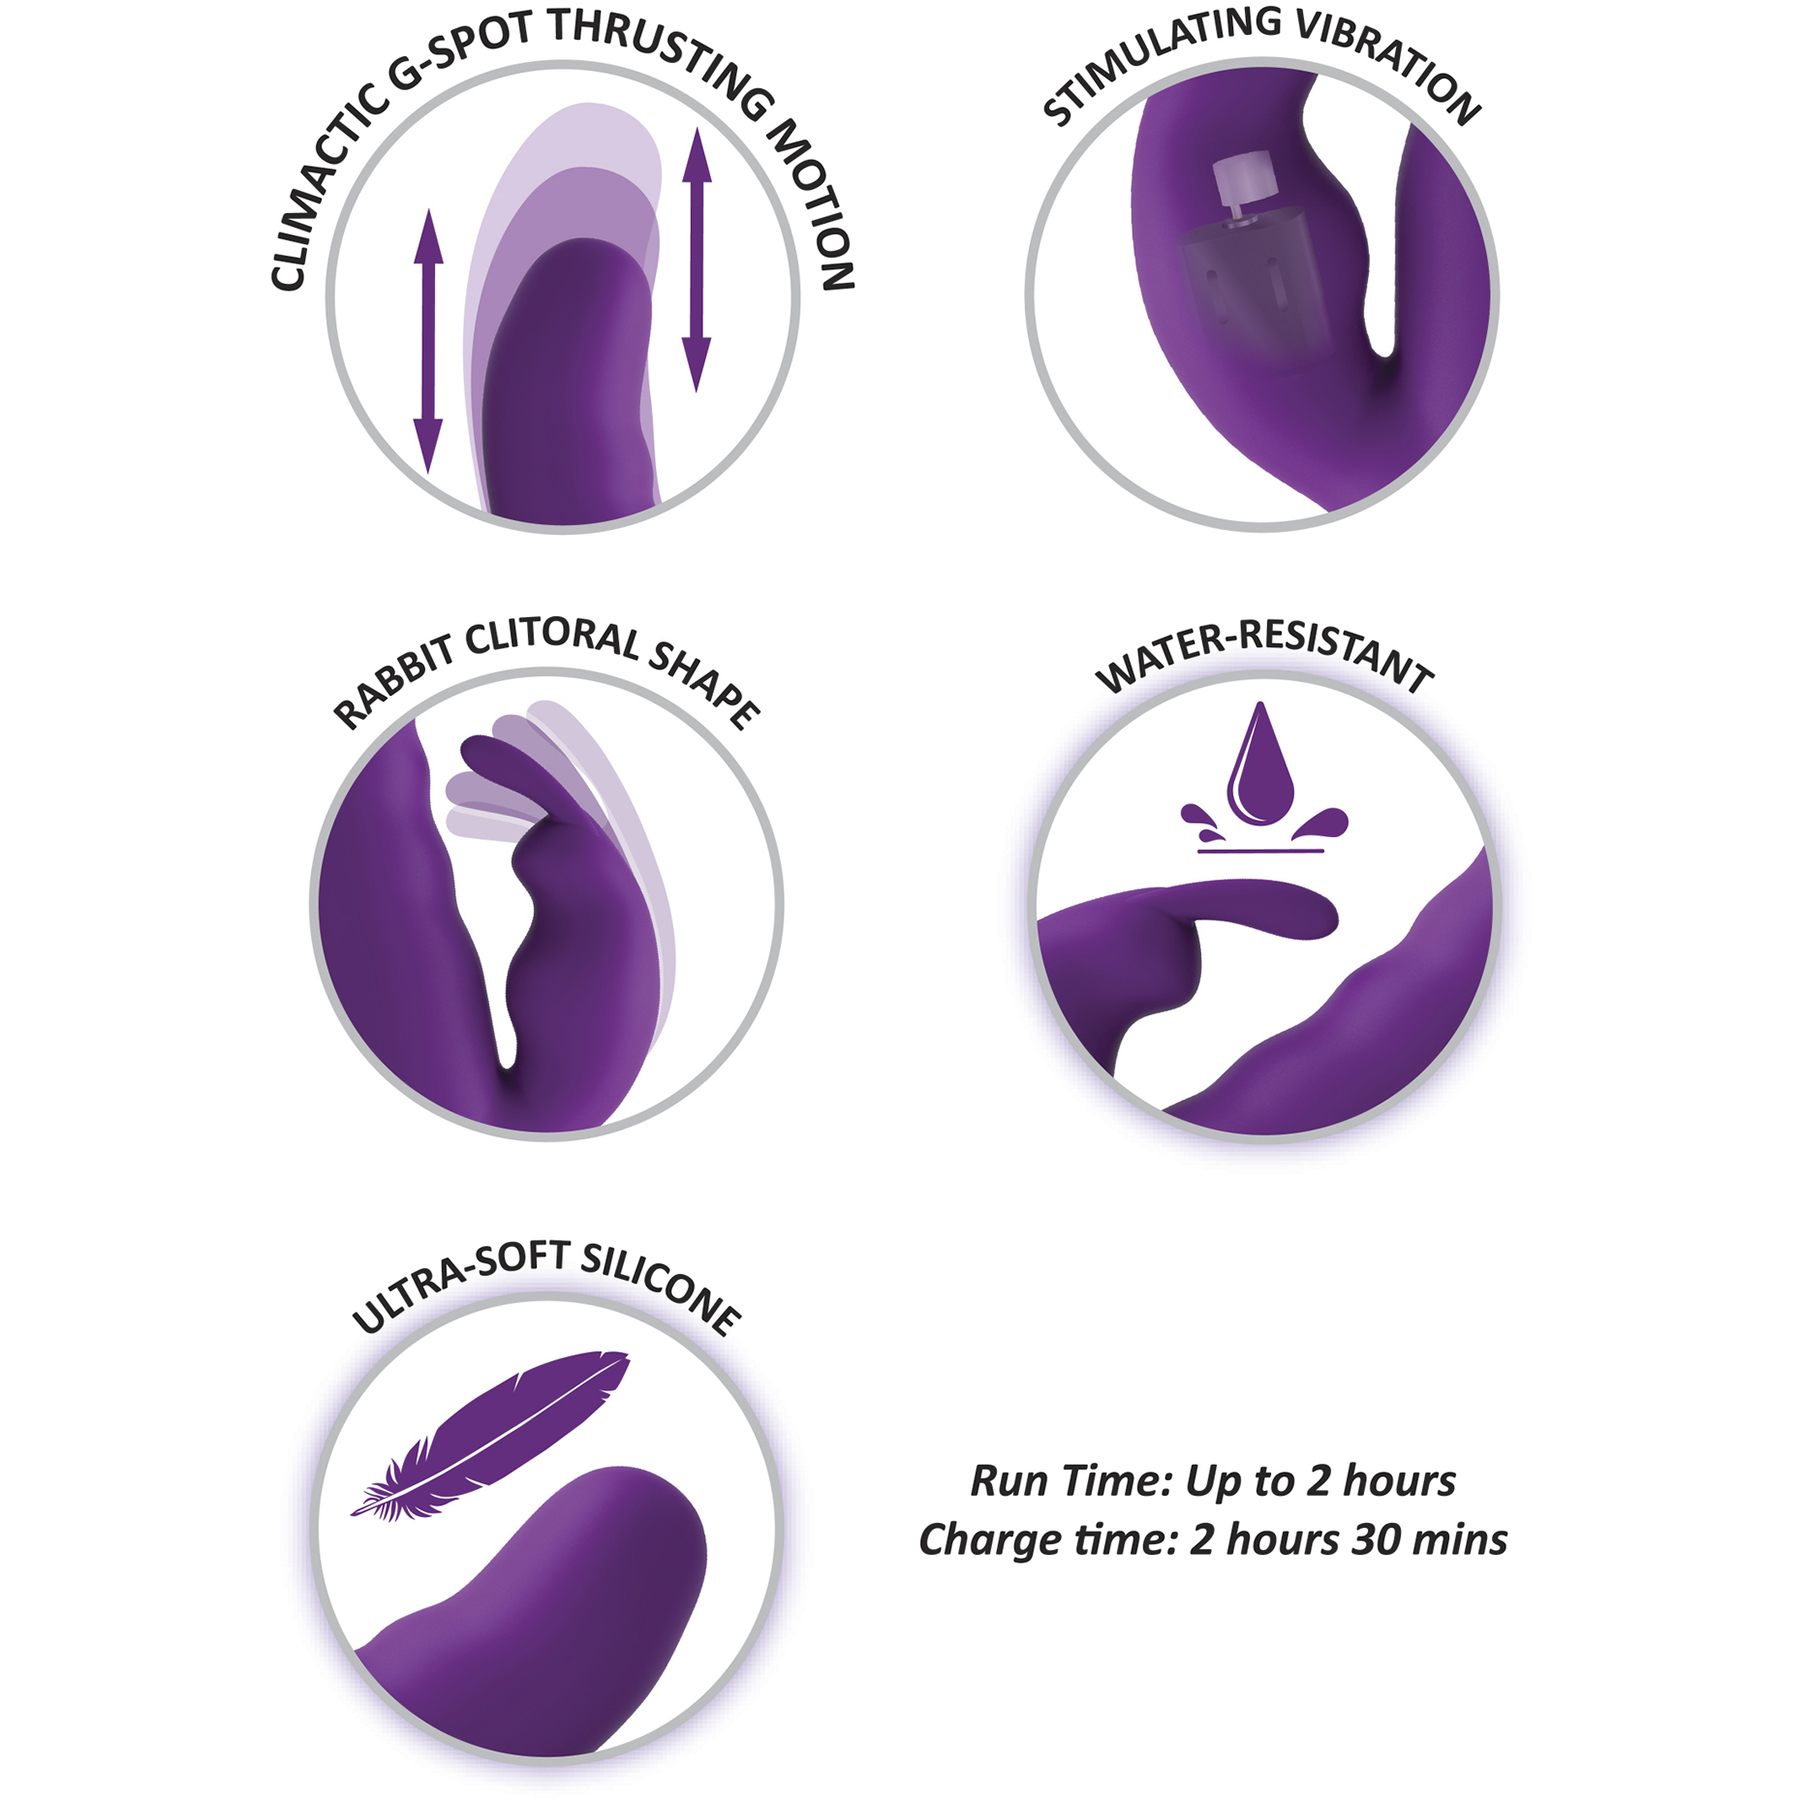 Commotion Cha Cha Silicone Waterproof Rechargeable Dual-Stimulation Vibrator - Features